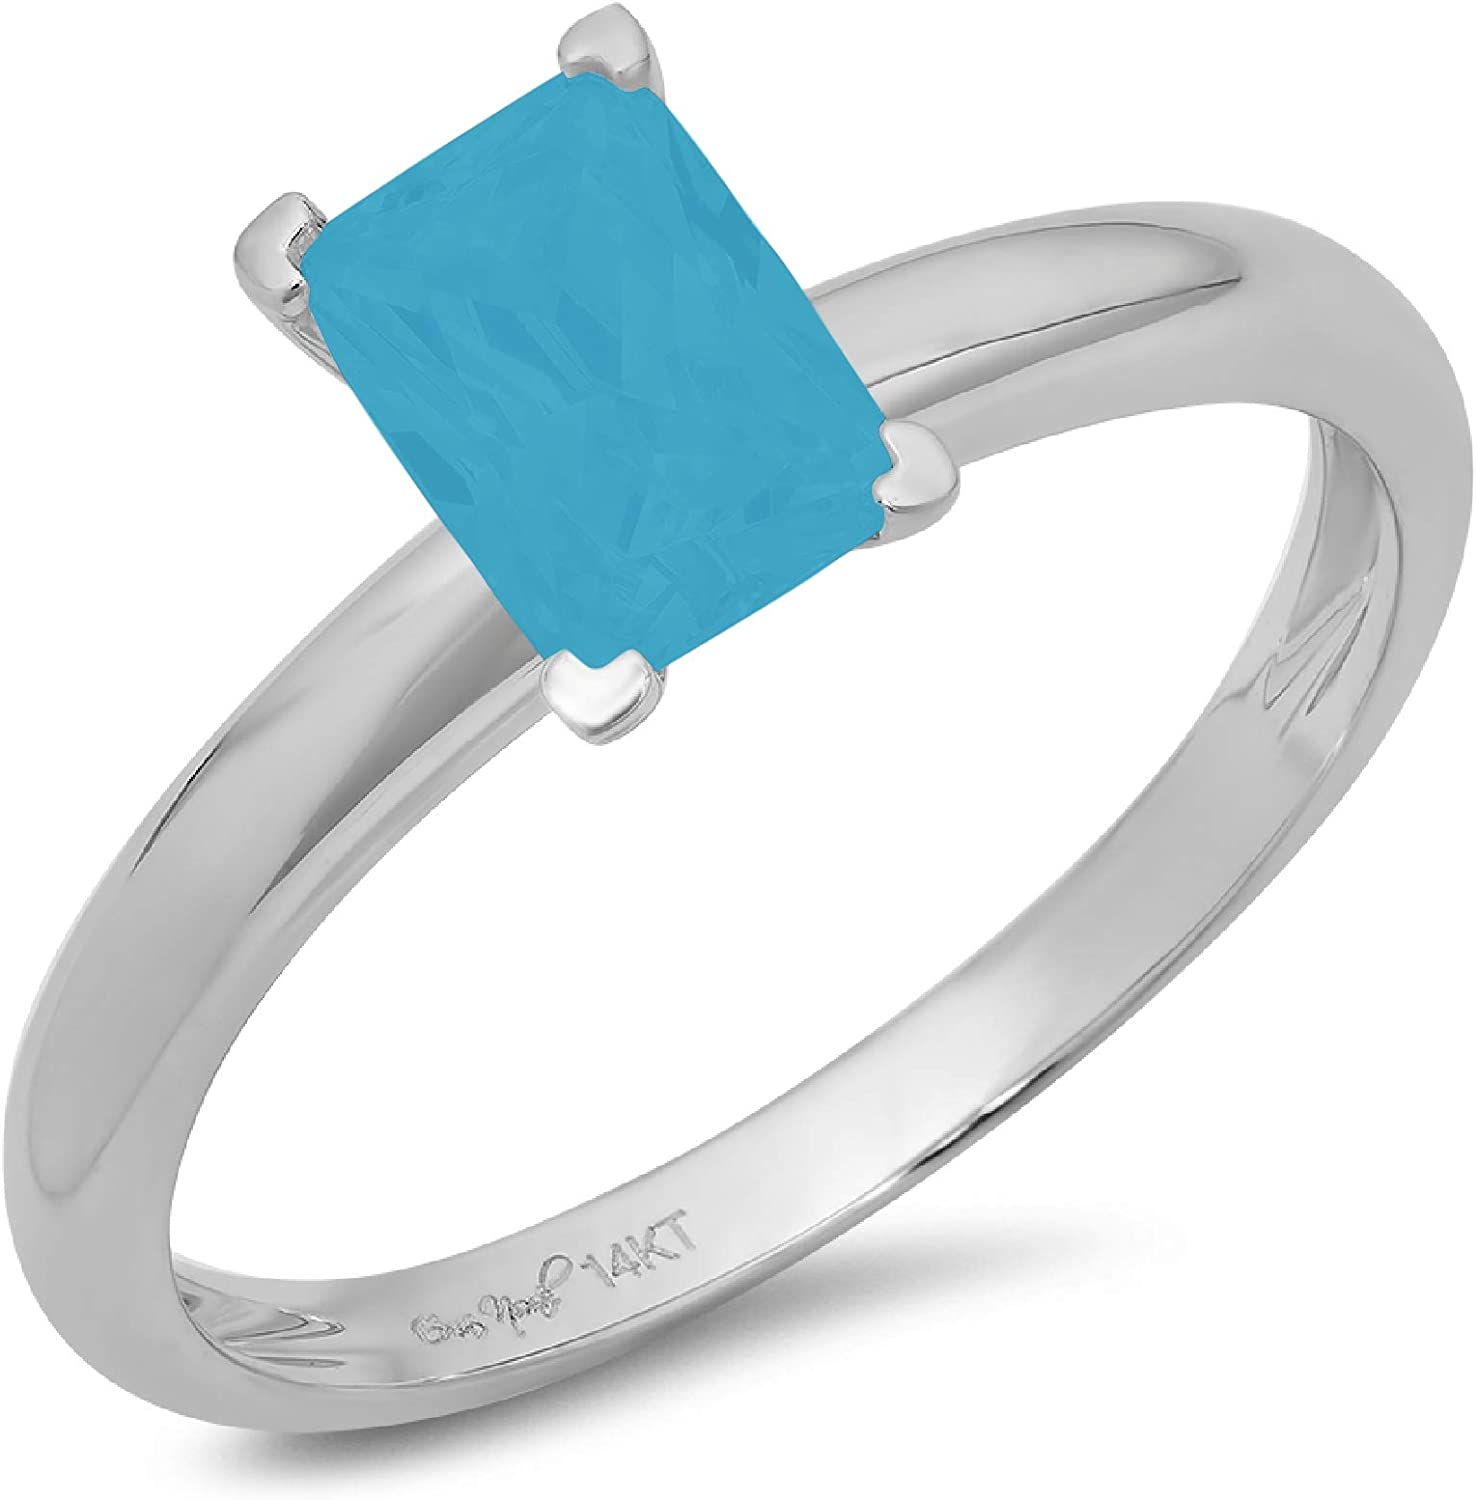 0.9ct Brilliant Emerald Cut Solitaire Flawless Simulated Cubic Zirconia Blue Turquoise Ideal 4-Prong Engagement Wedding Bridal Promise Anniversary Designer Ring Solid 14k White Gold for Women